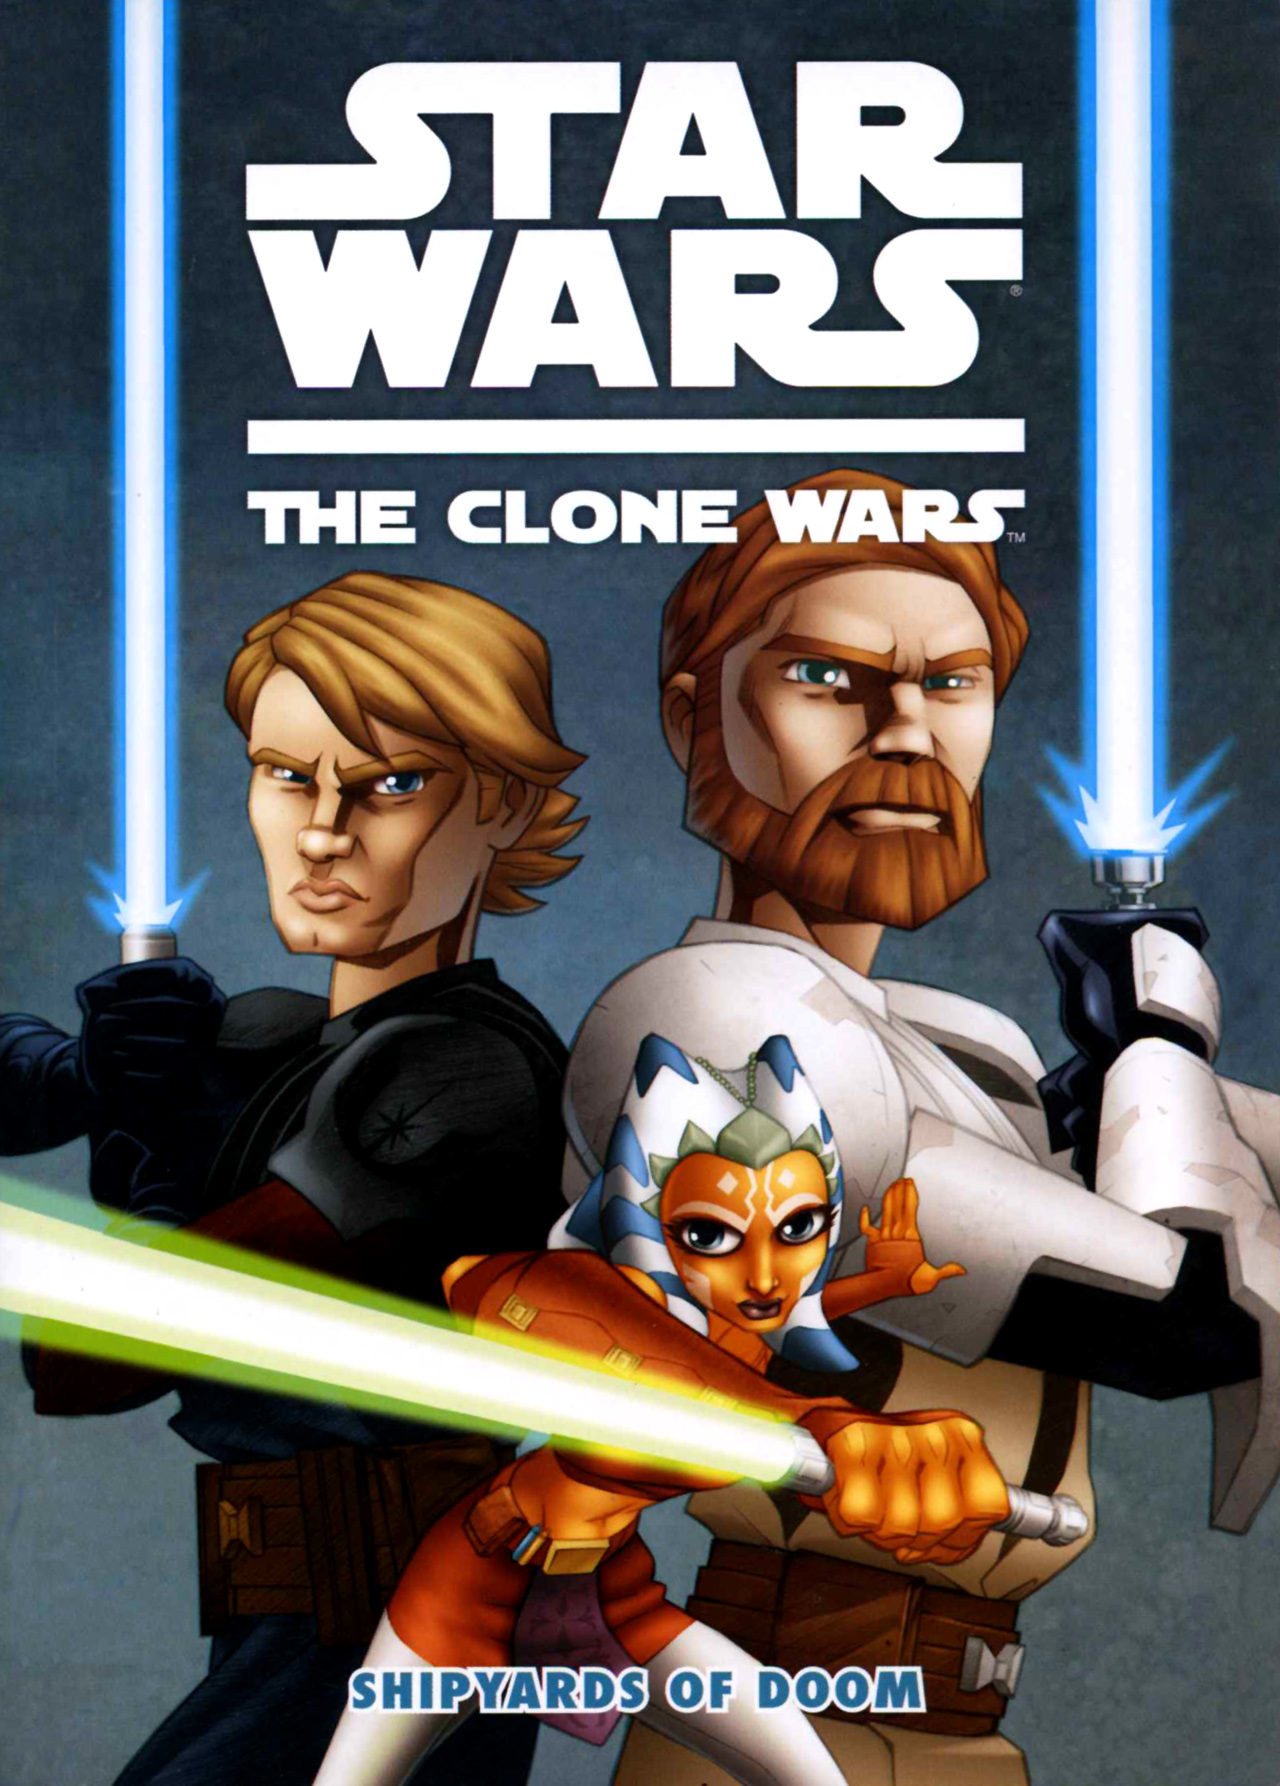 Read online Star Wars: The Clone Wars - Shipyards of Doom comic -  Issue # Full - 1